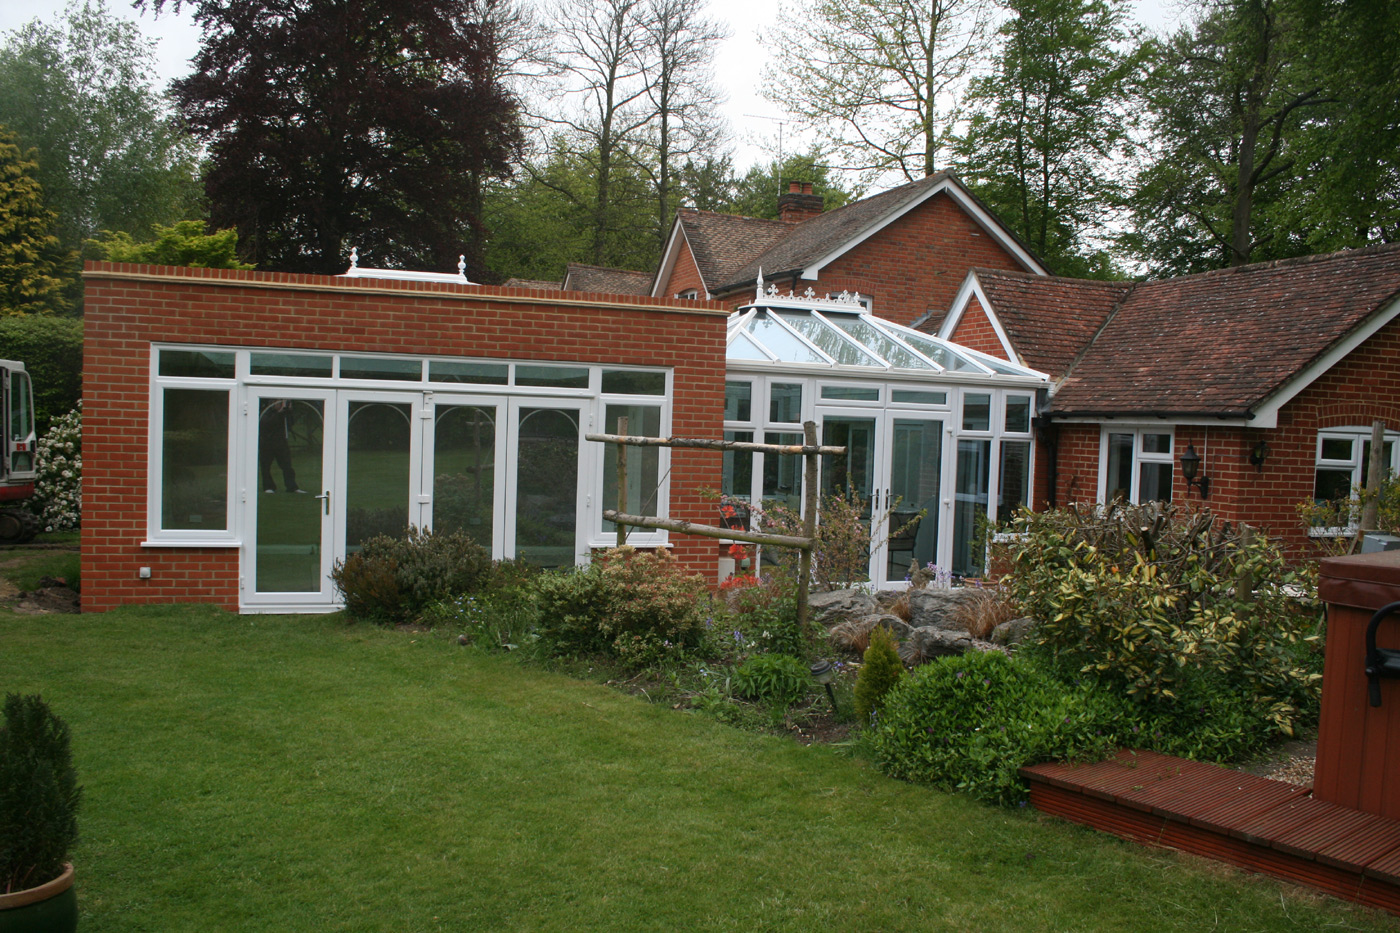 Landscaping and Extension